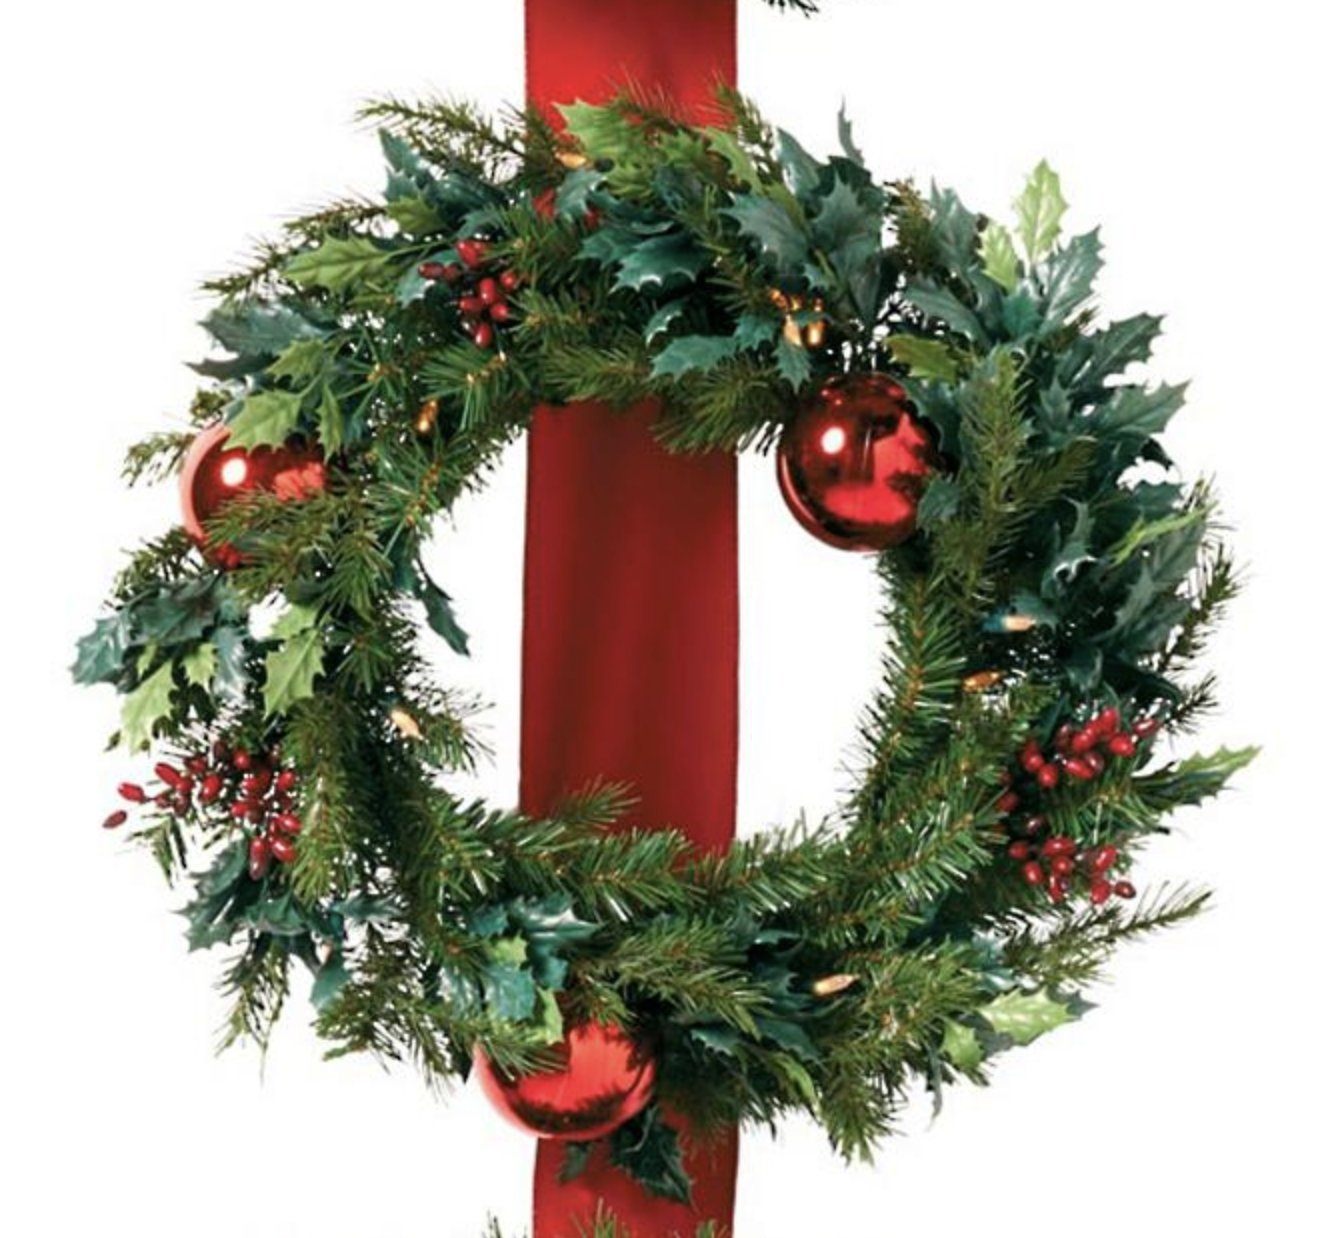 3 Cordless Holly and Berry Wreaths on Ribbon Door Christmas Decoration